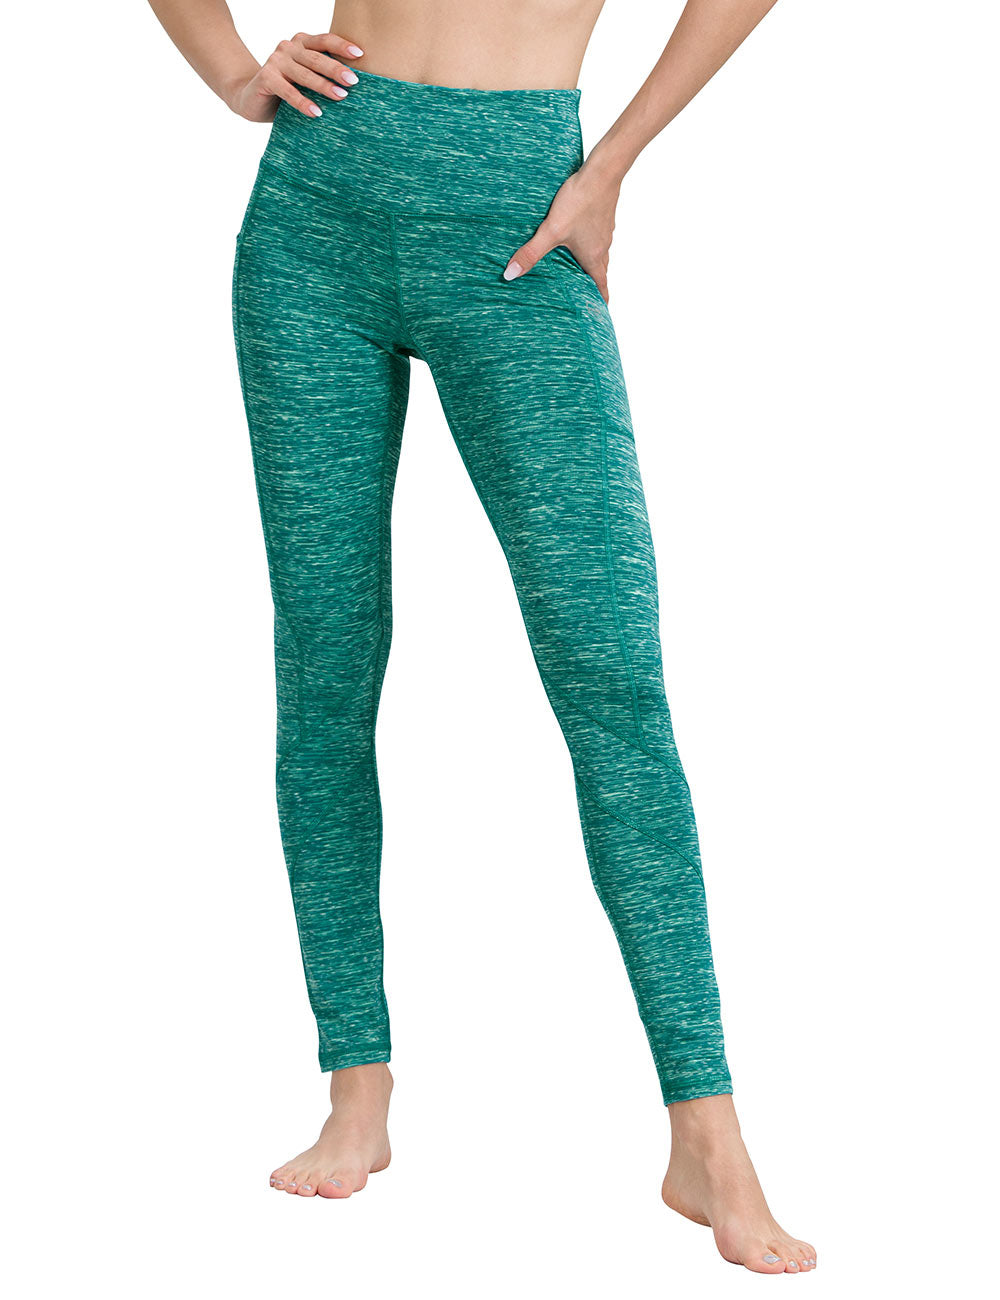 Space Green Yoga Pants - ALONGFIT